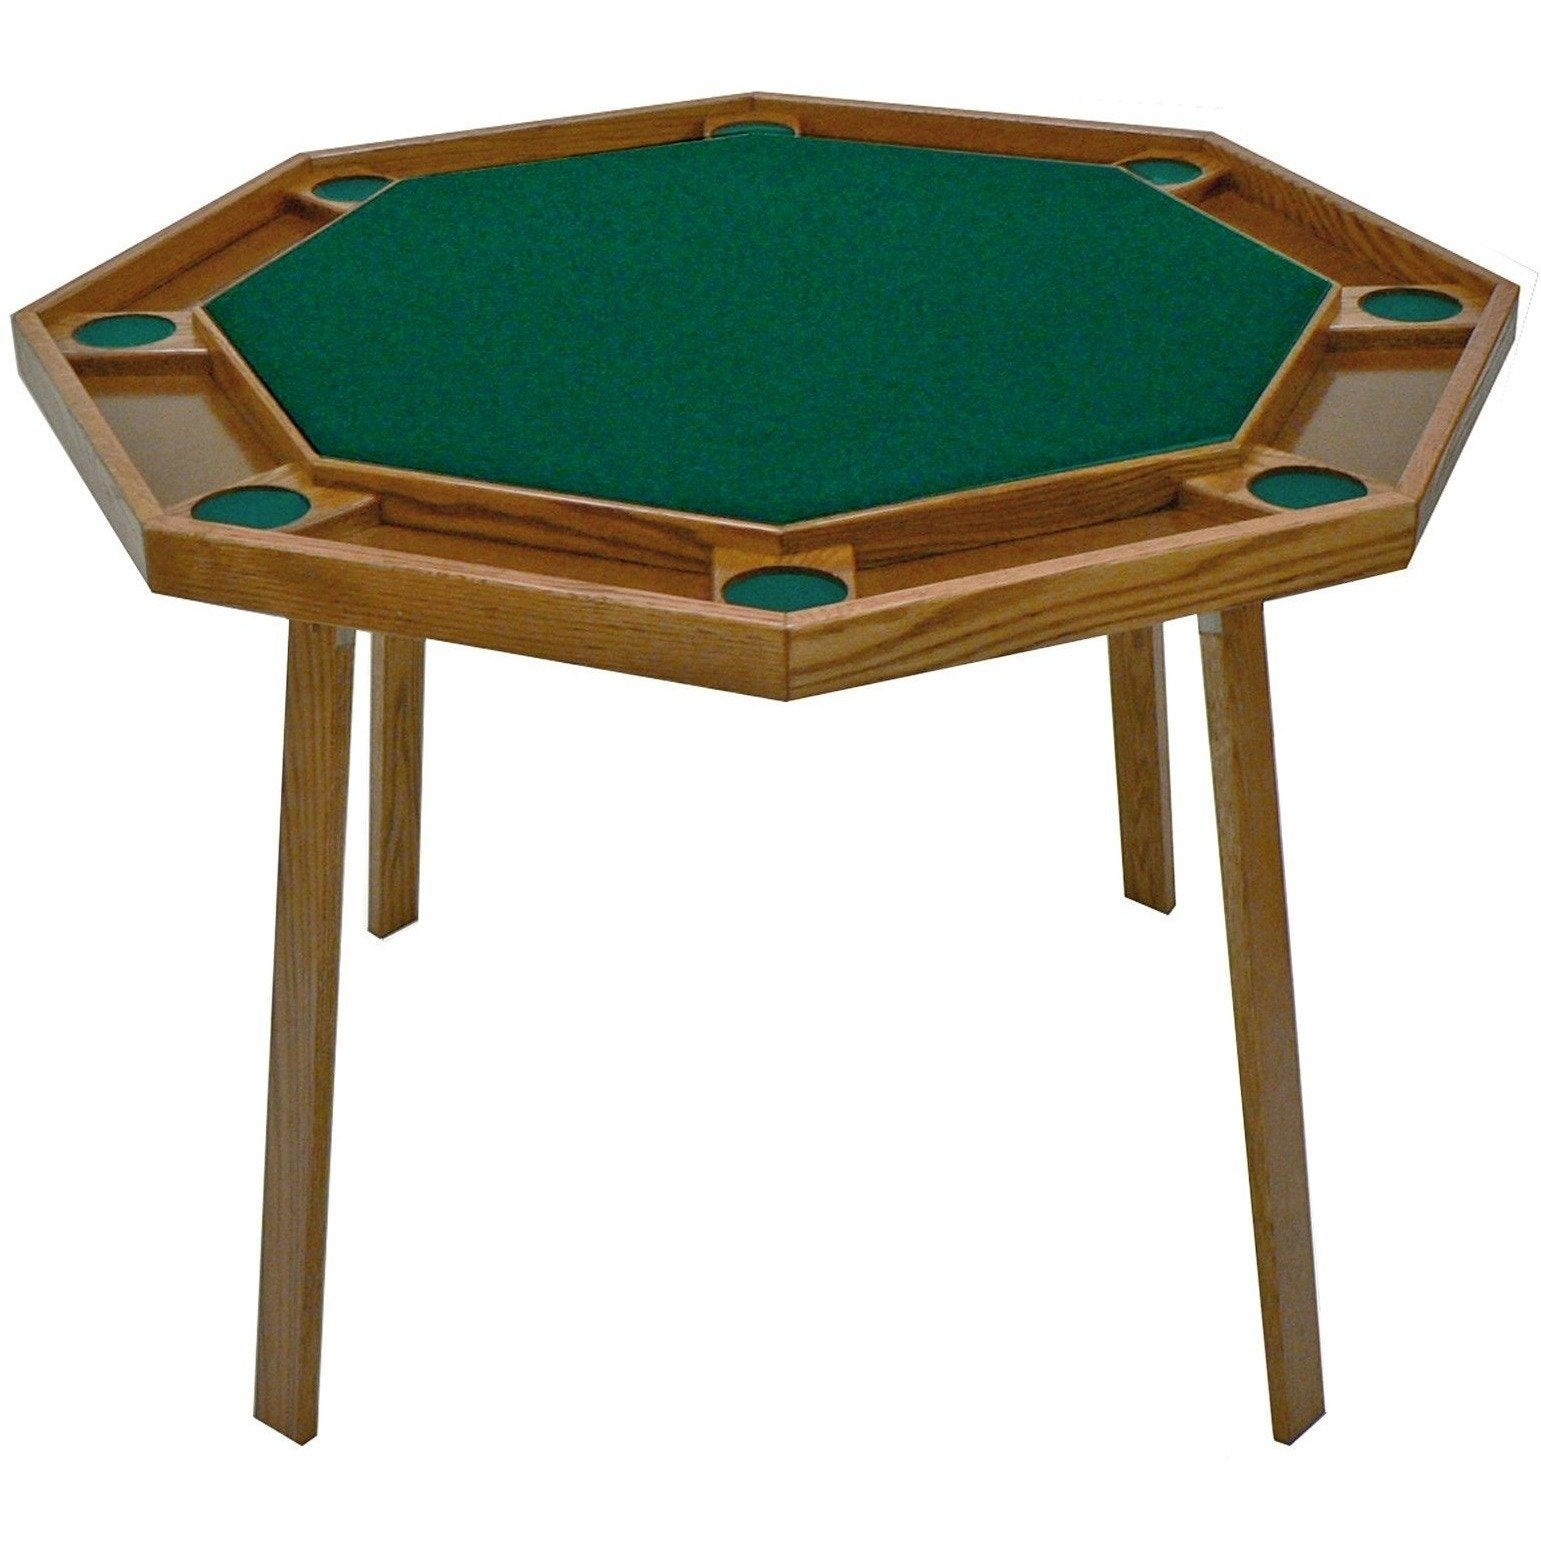 "Kestell 48"" Oak Octagon Folding Poker Table 8 Person - Gaming Blaze"